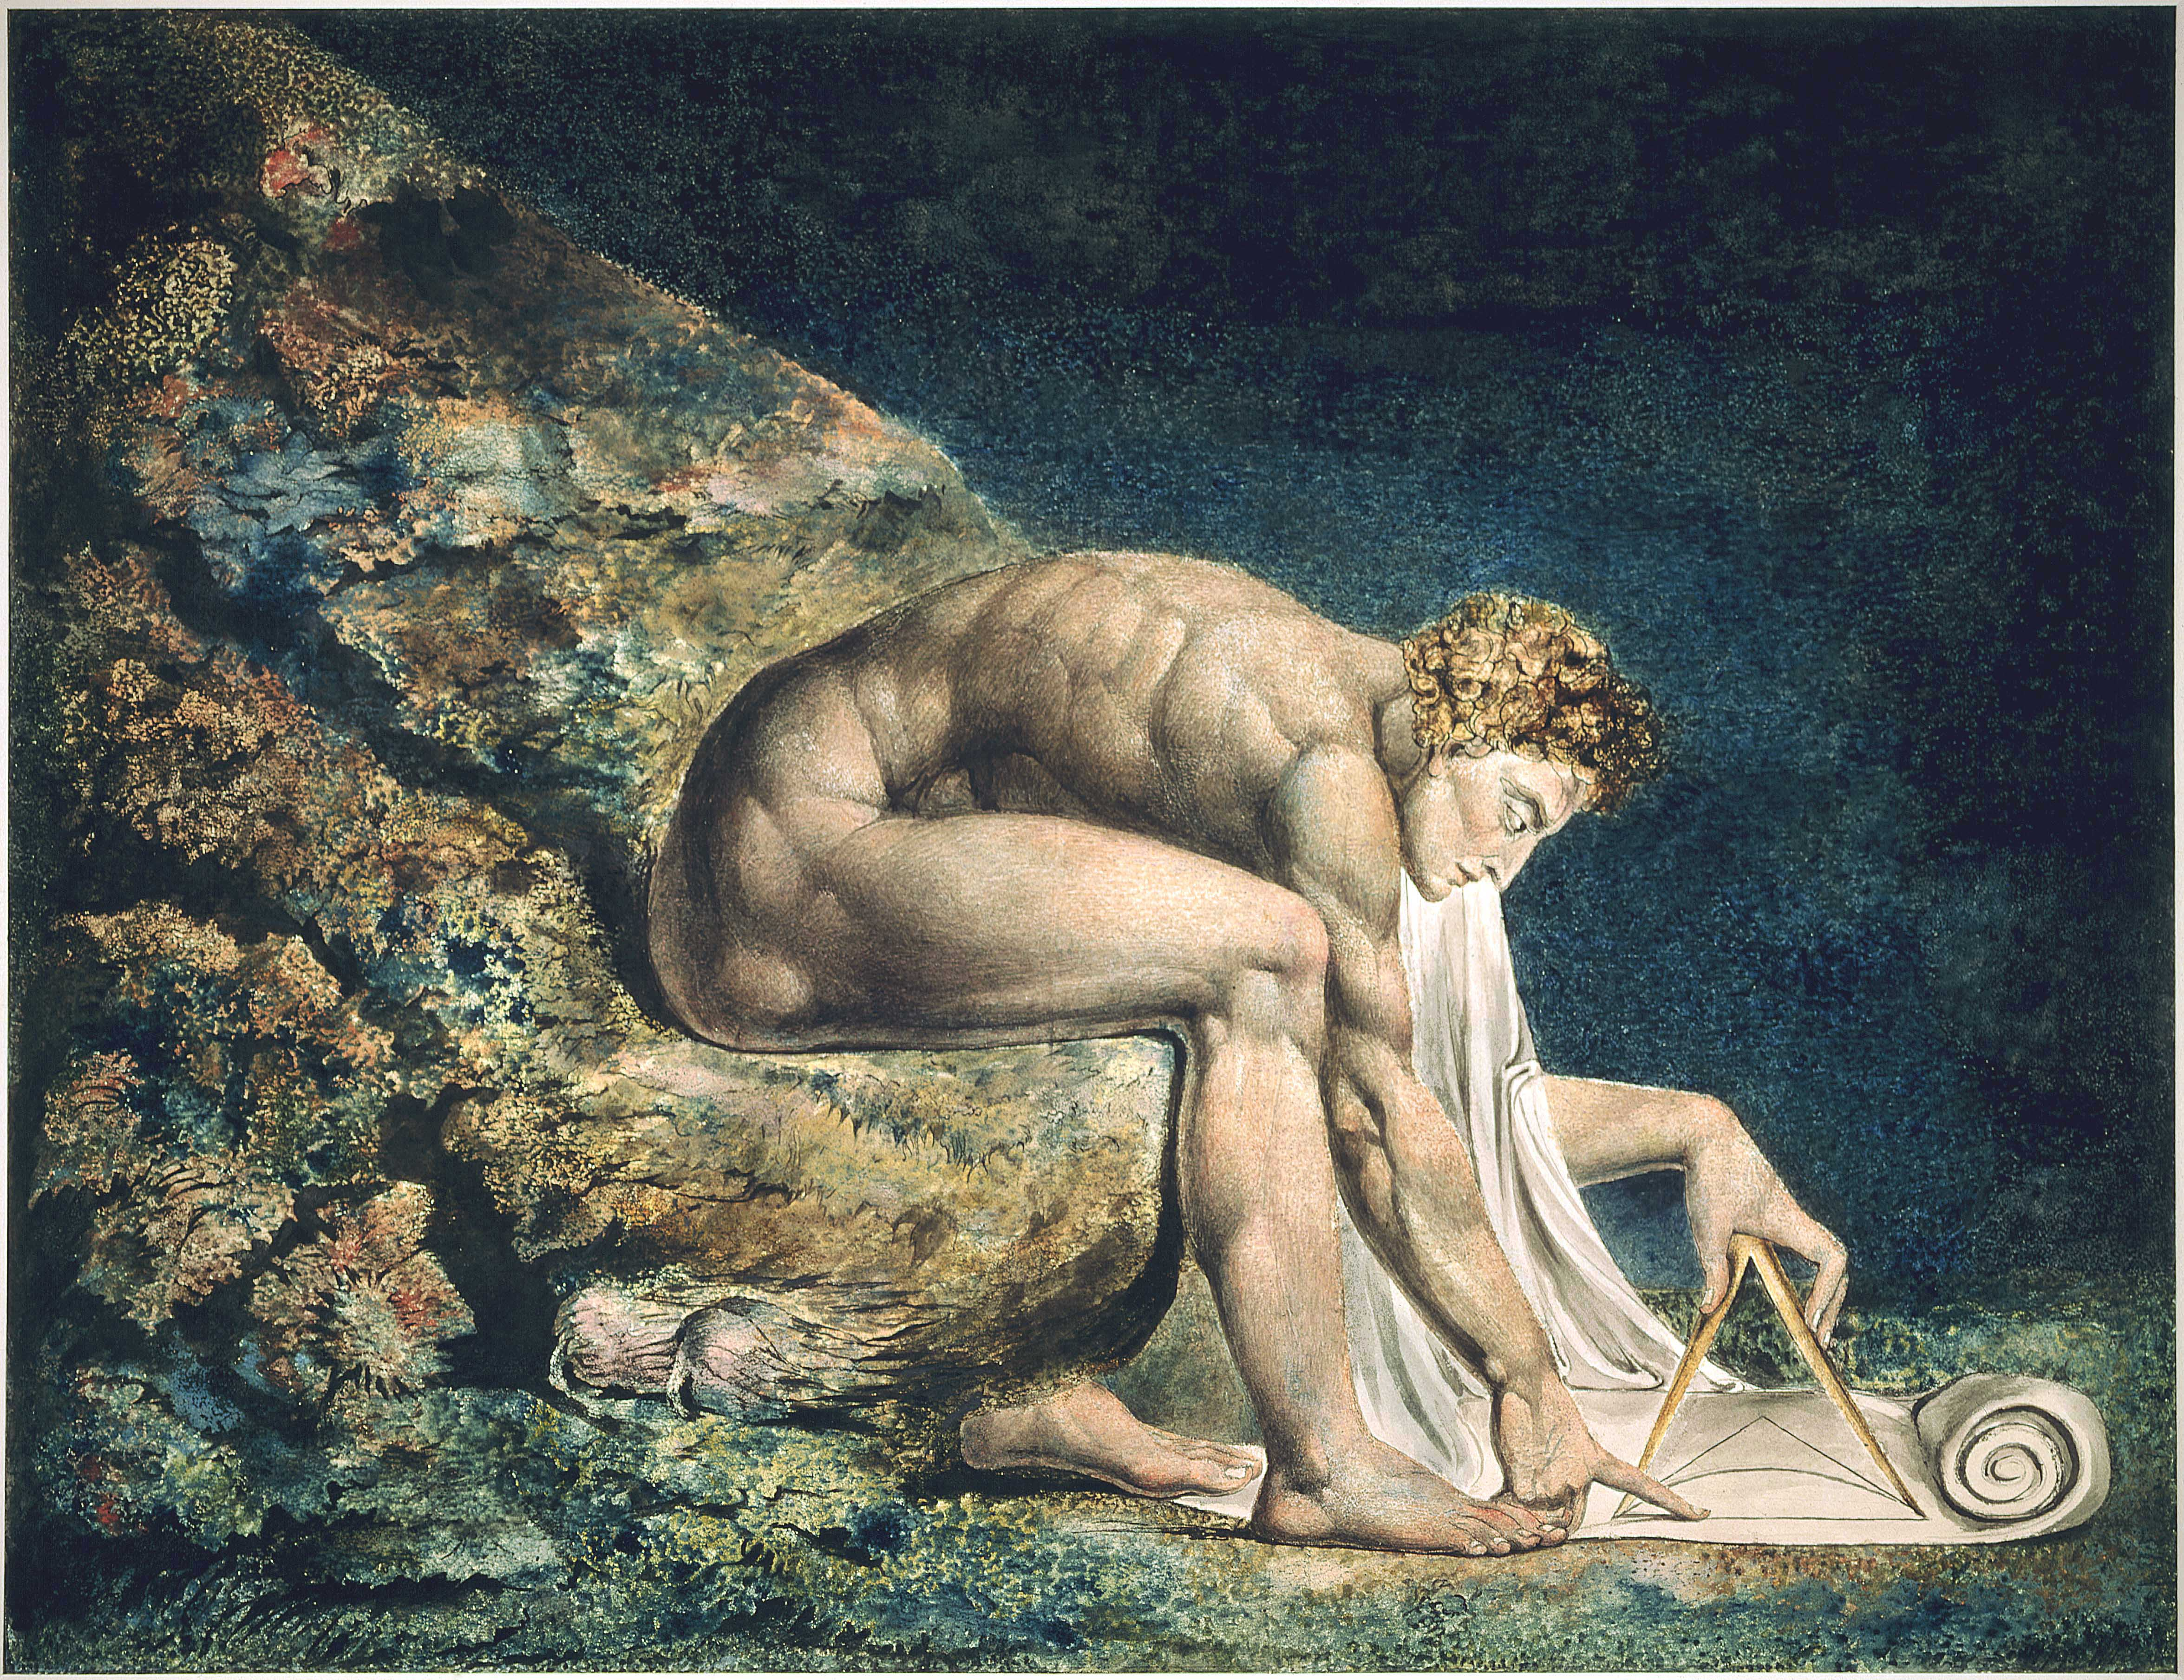 //Newton// by William Blake, 1795. From the Tate Britain Collection.